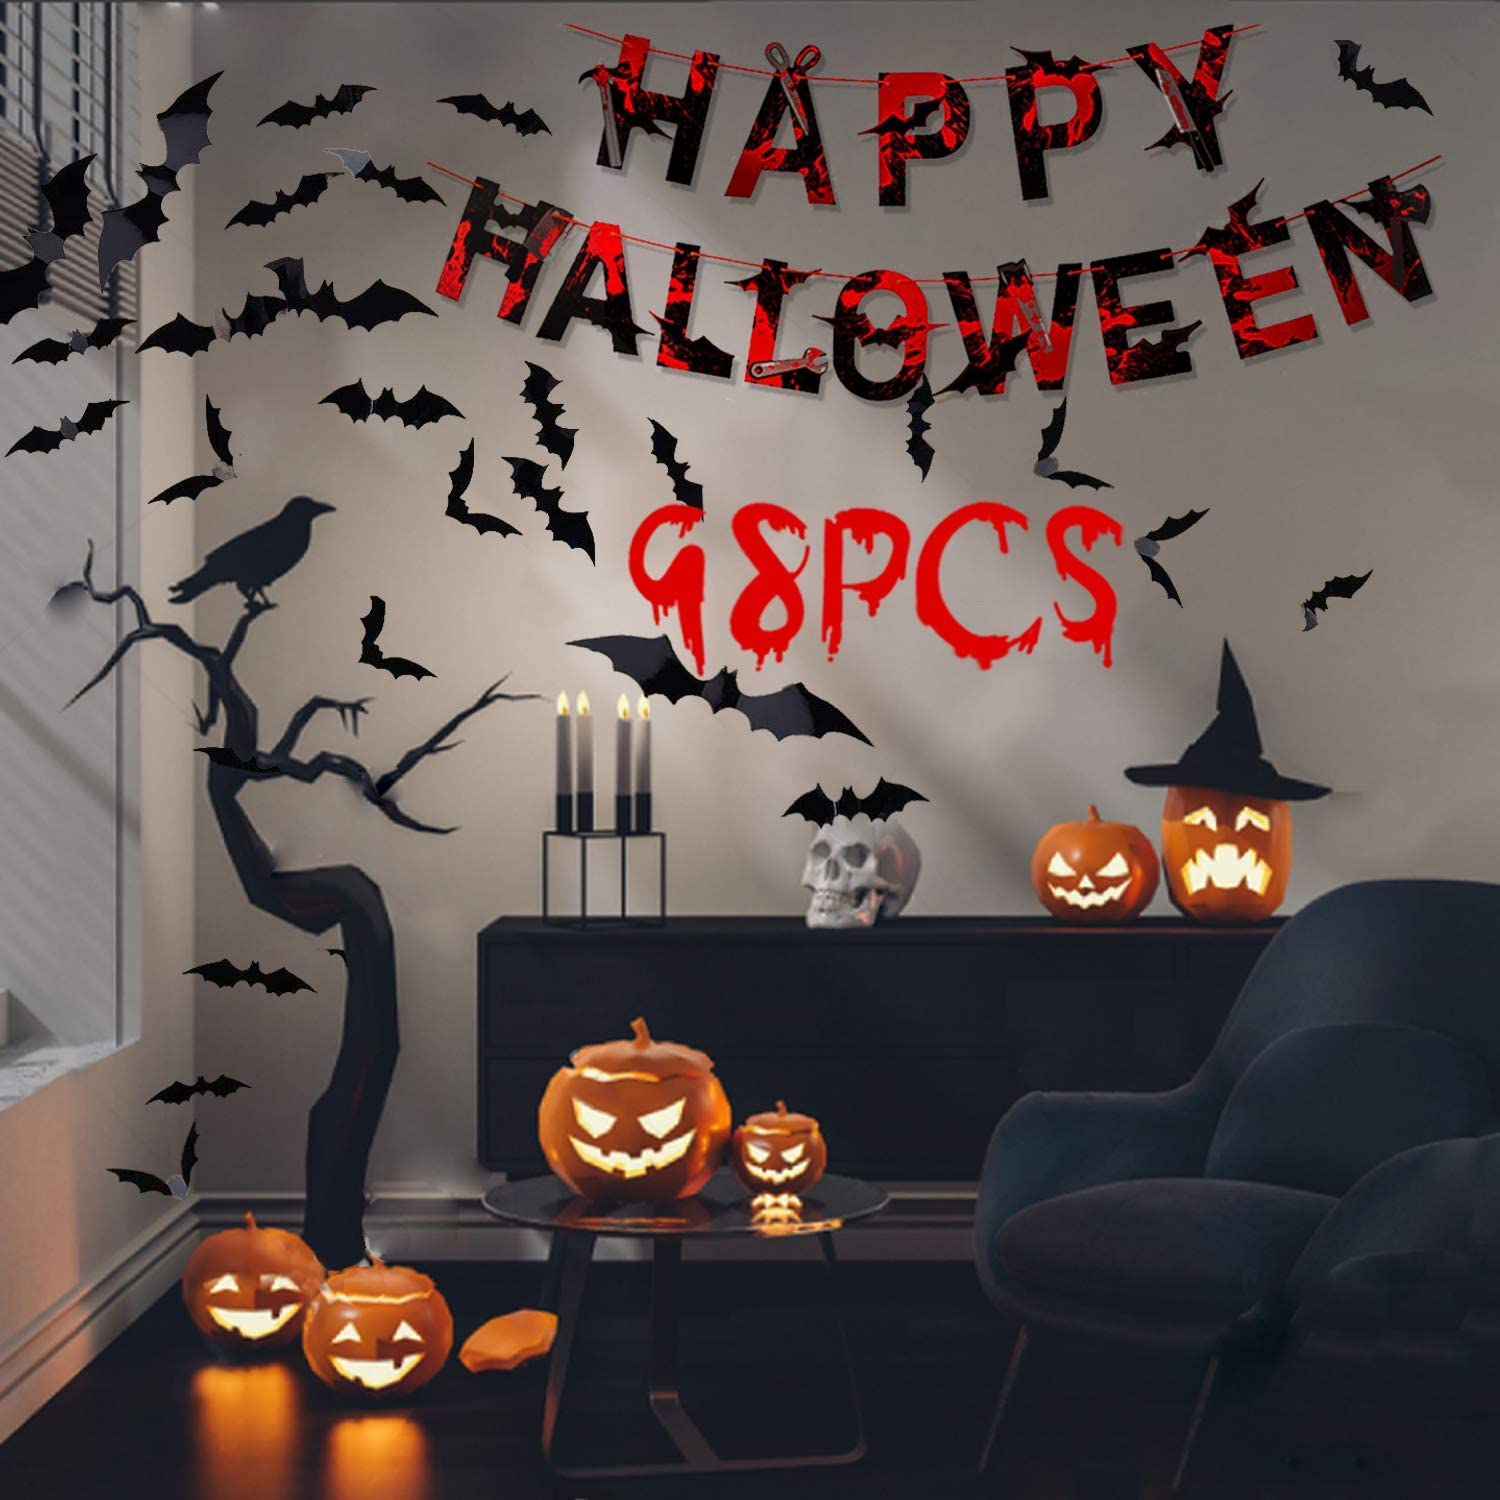 Halloween Decoration, Party Decorations with Decor Bats& Happy Halloween Banner, 3d Decoration Scary Bats Wall Decal Wall Sticker for Indoor Halloween Home Party Office Dormitory School Decor Supplies